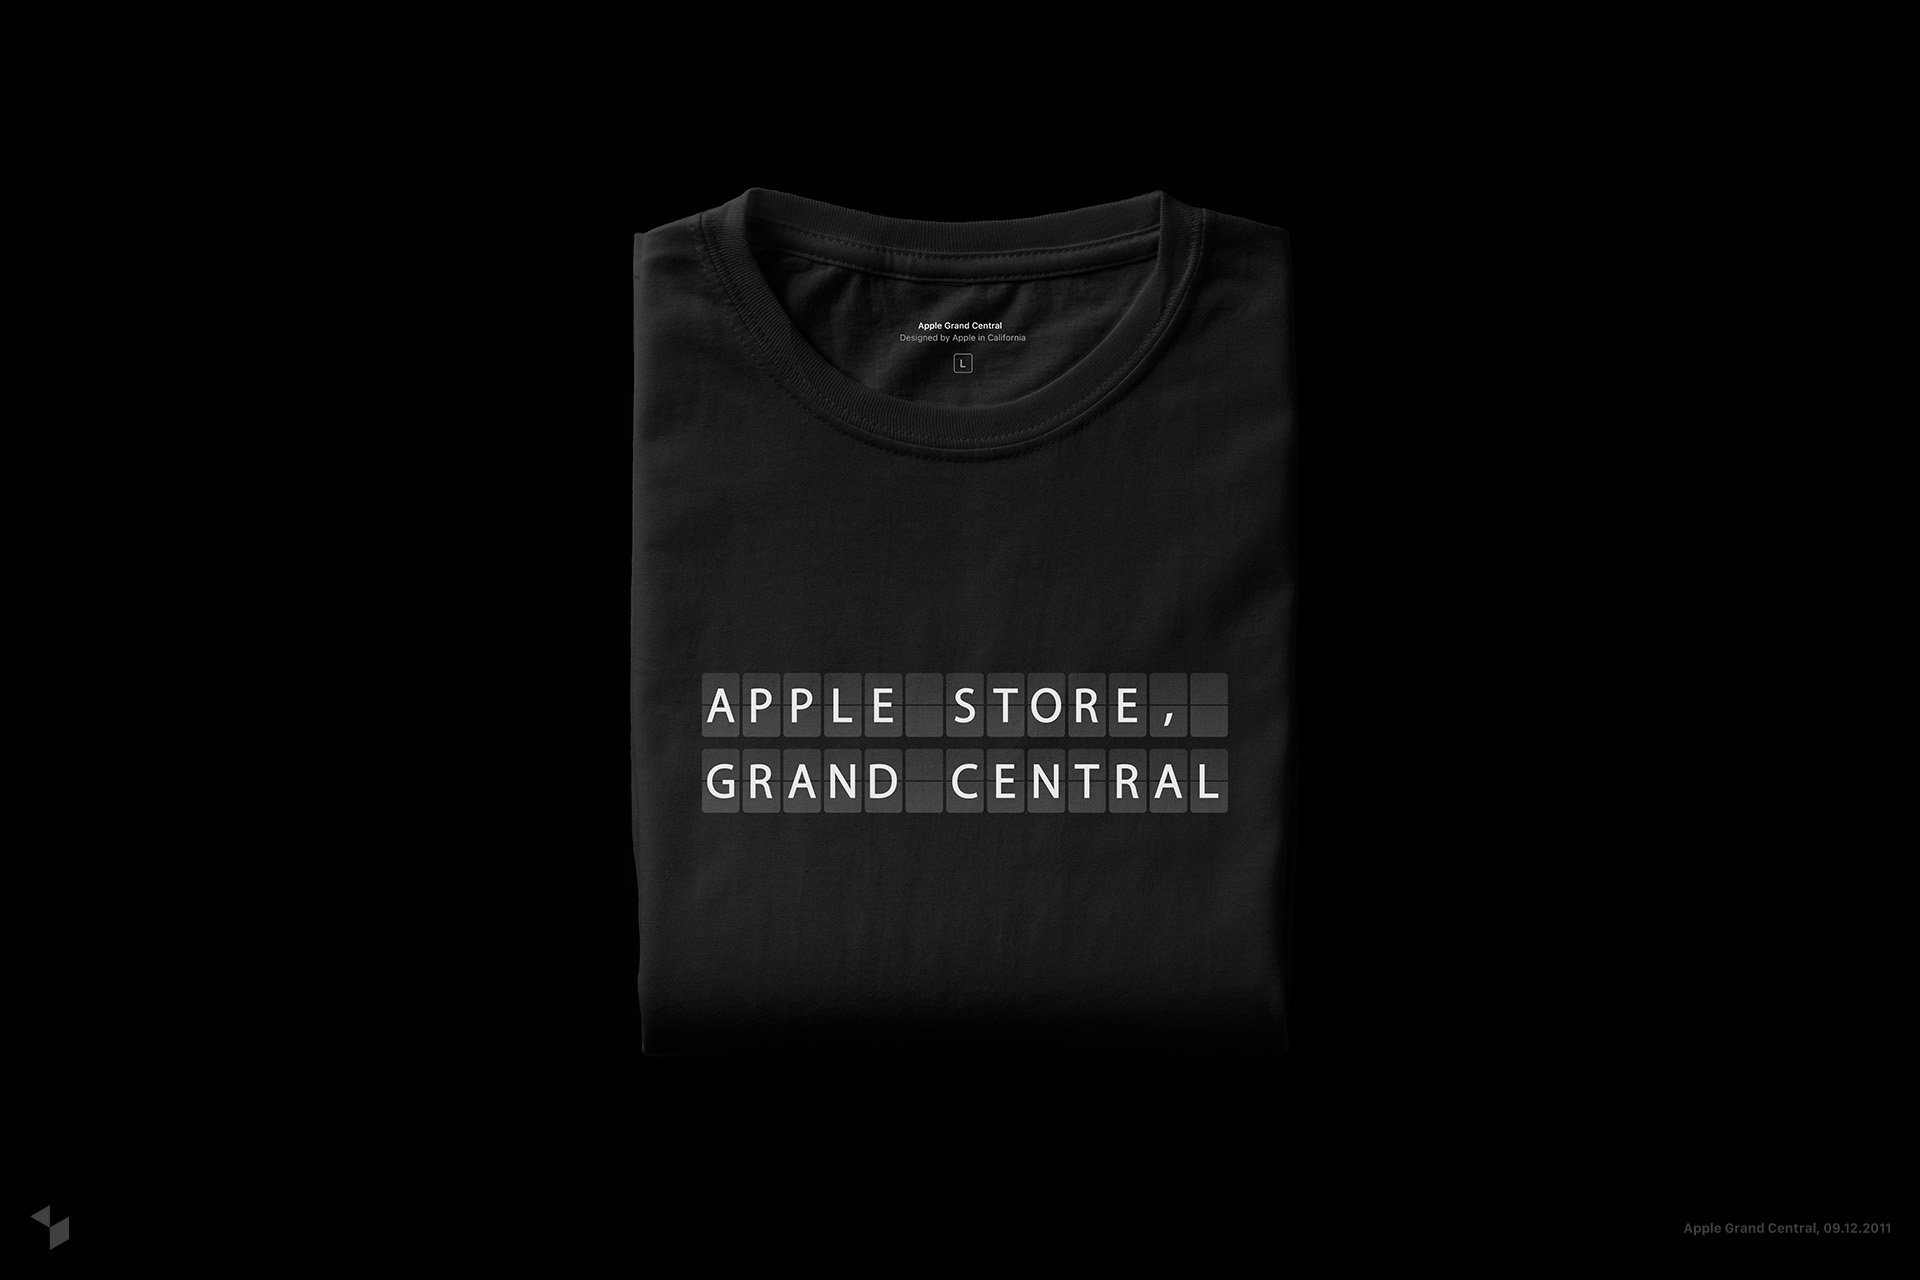 Apple Grand Central in New York City (USA) eröffnete am 09. Dezember 2011